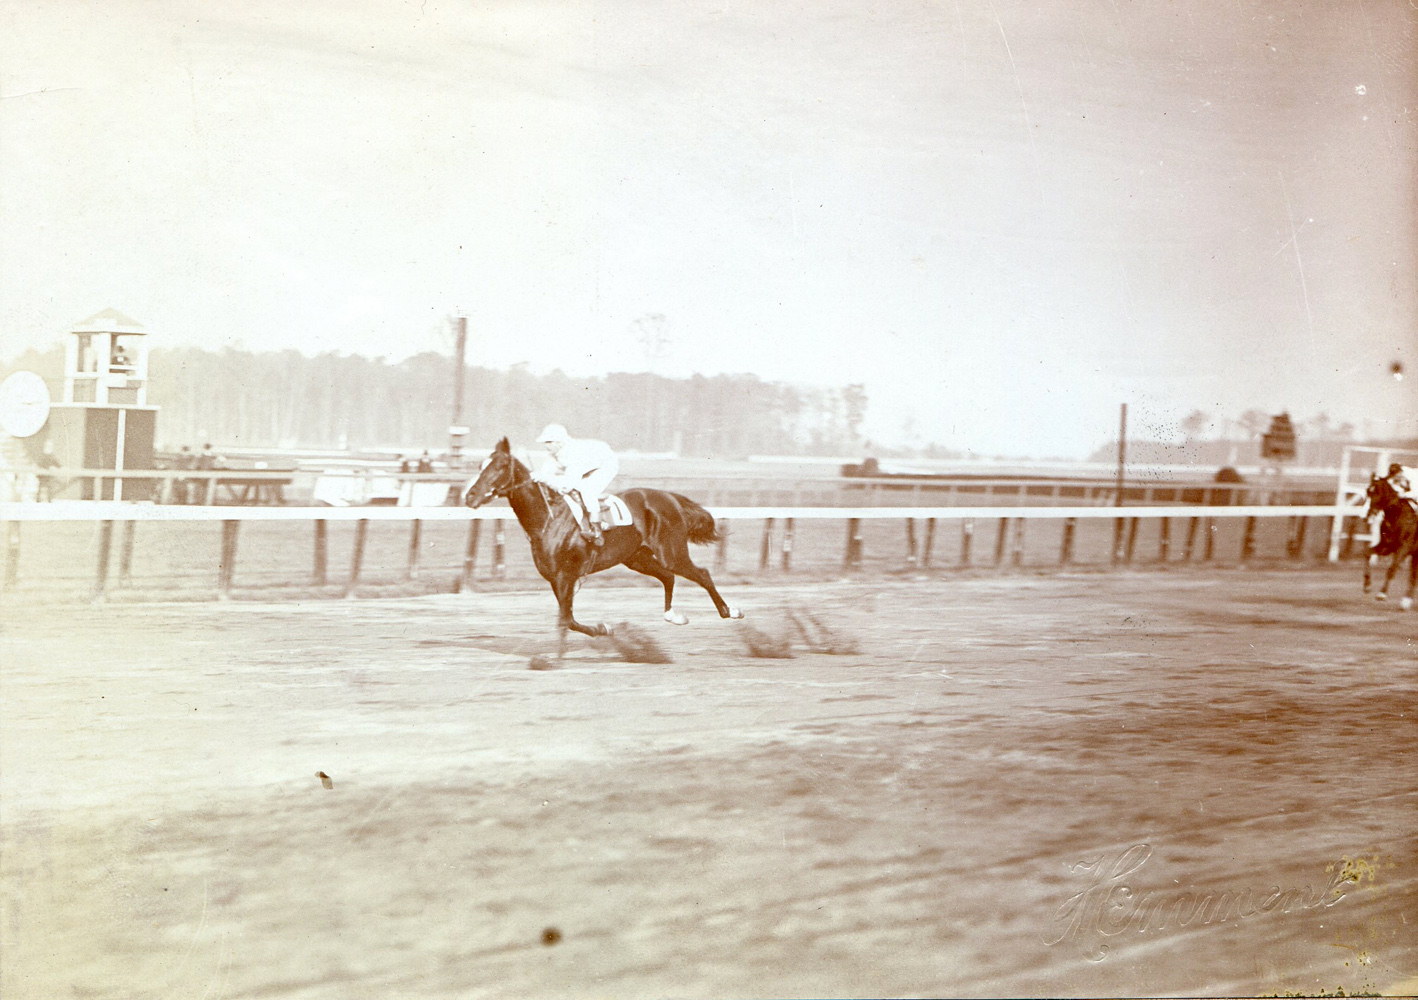 Walter Miller and Colin winning the 1907 National Stallion Stakes at Belmont Park (J. C. Hemment/Museum Collection)